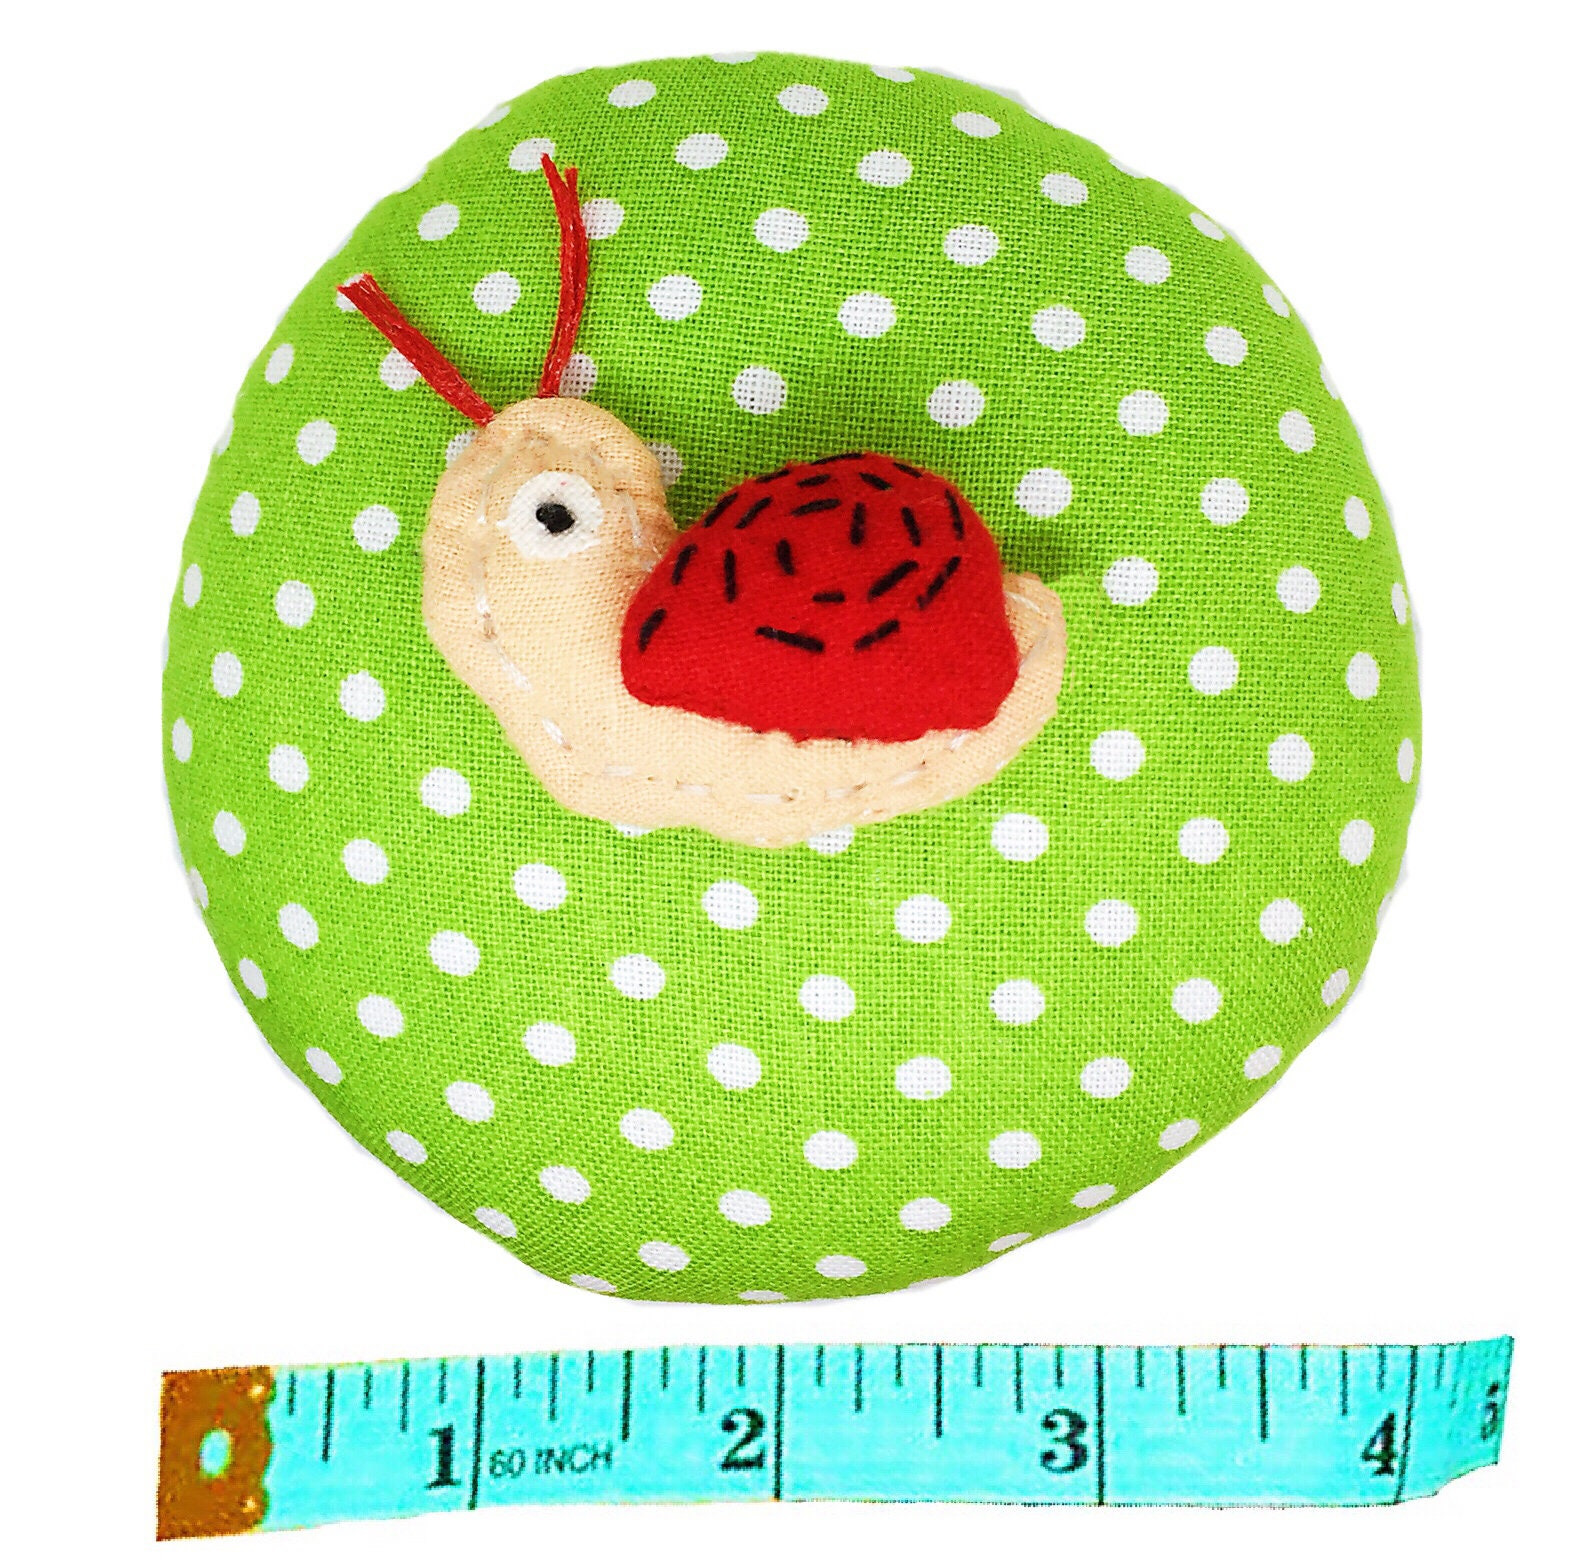 Snails Blue PeavyTailor Emery Pin Cushion 10oz Extra Large Keep Needles Clean and Sharp Needle Storage Organizer